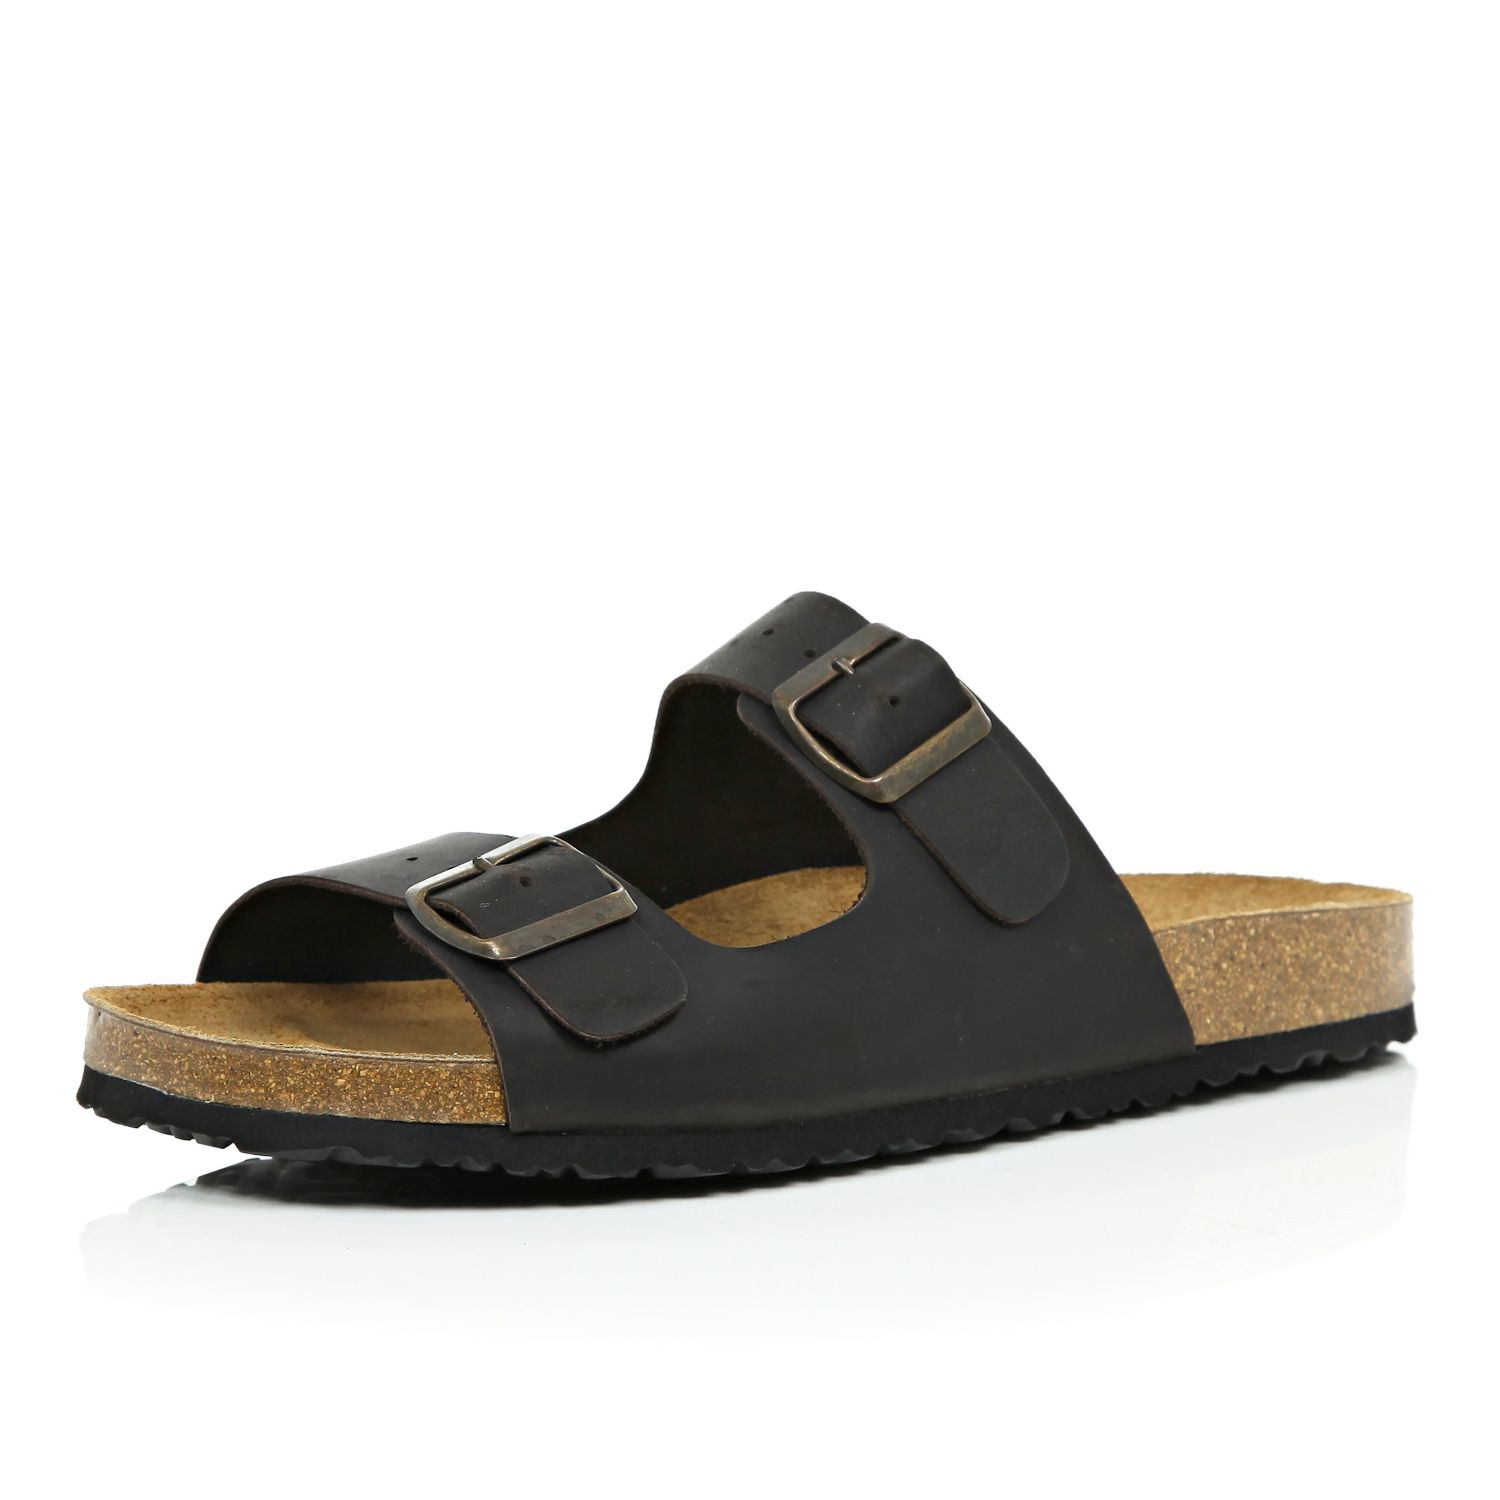 River Island Dark Brown Leather Double Buckle Sandals In